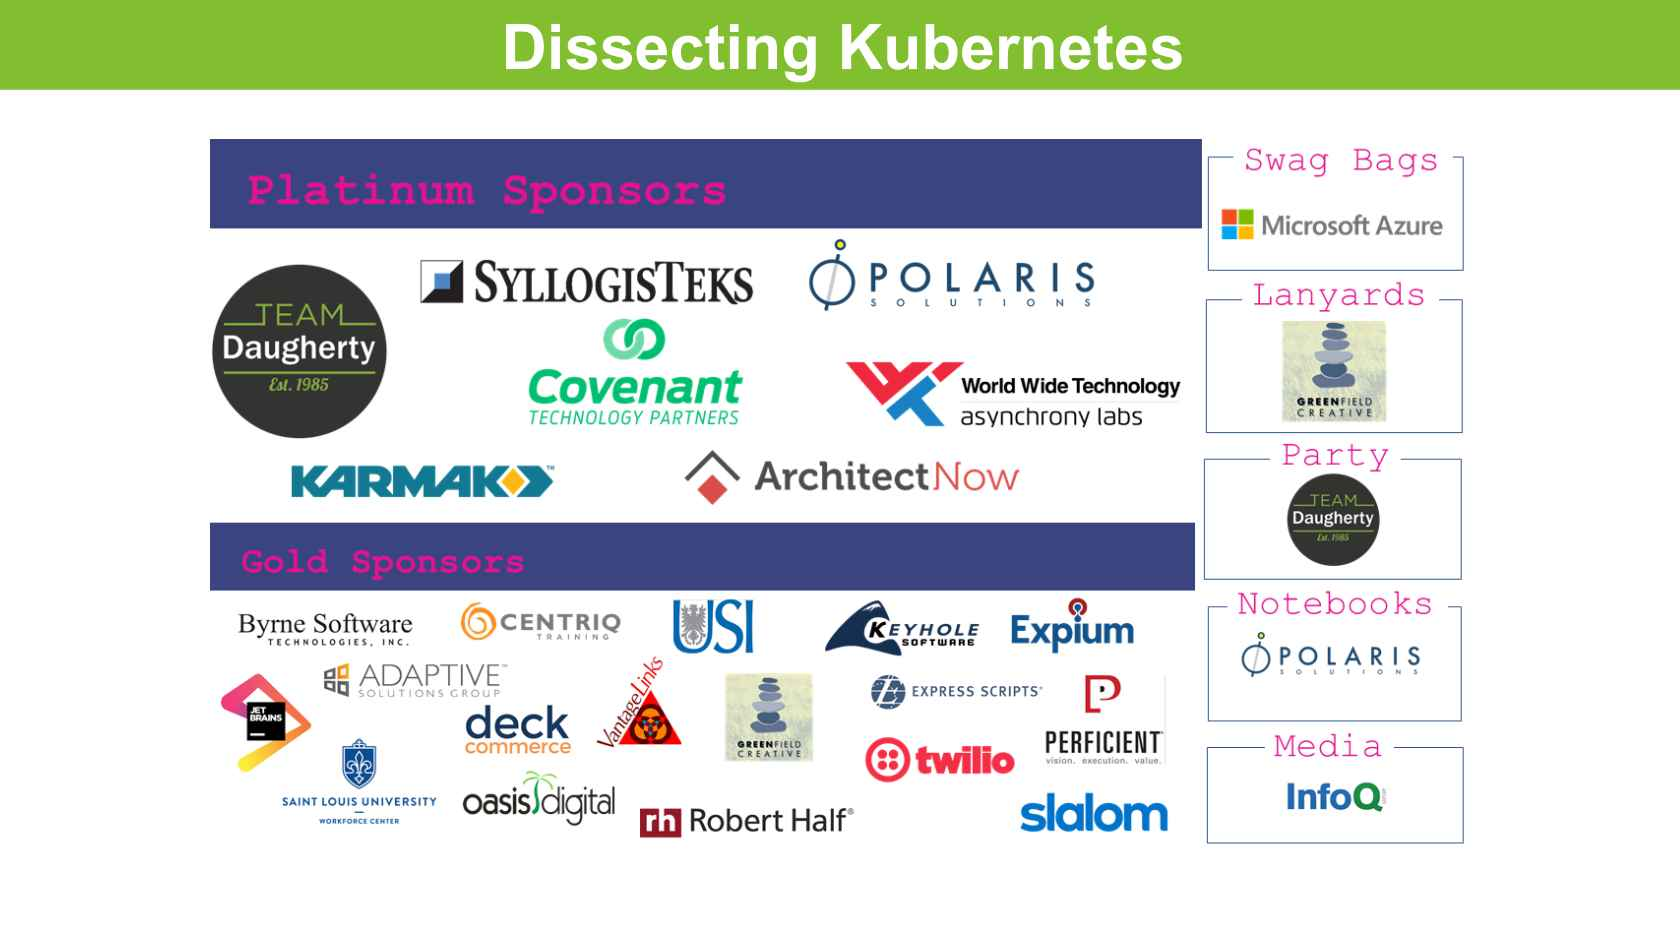 Dissecting Kubernetes (K8s) - An Intro to Main Components